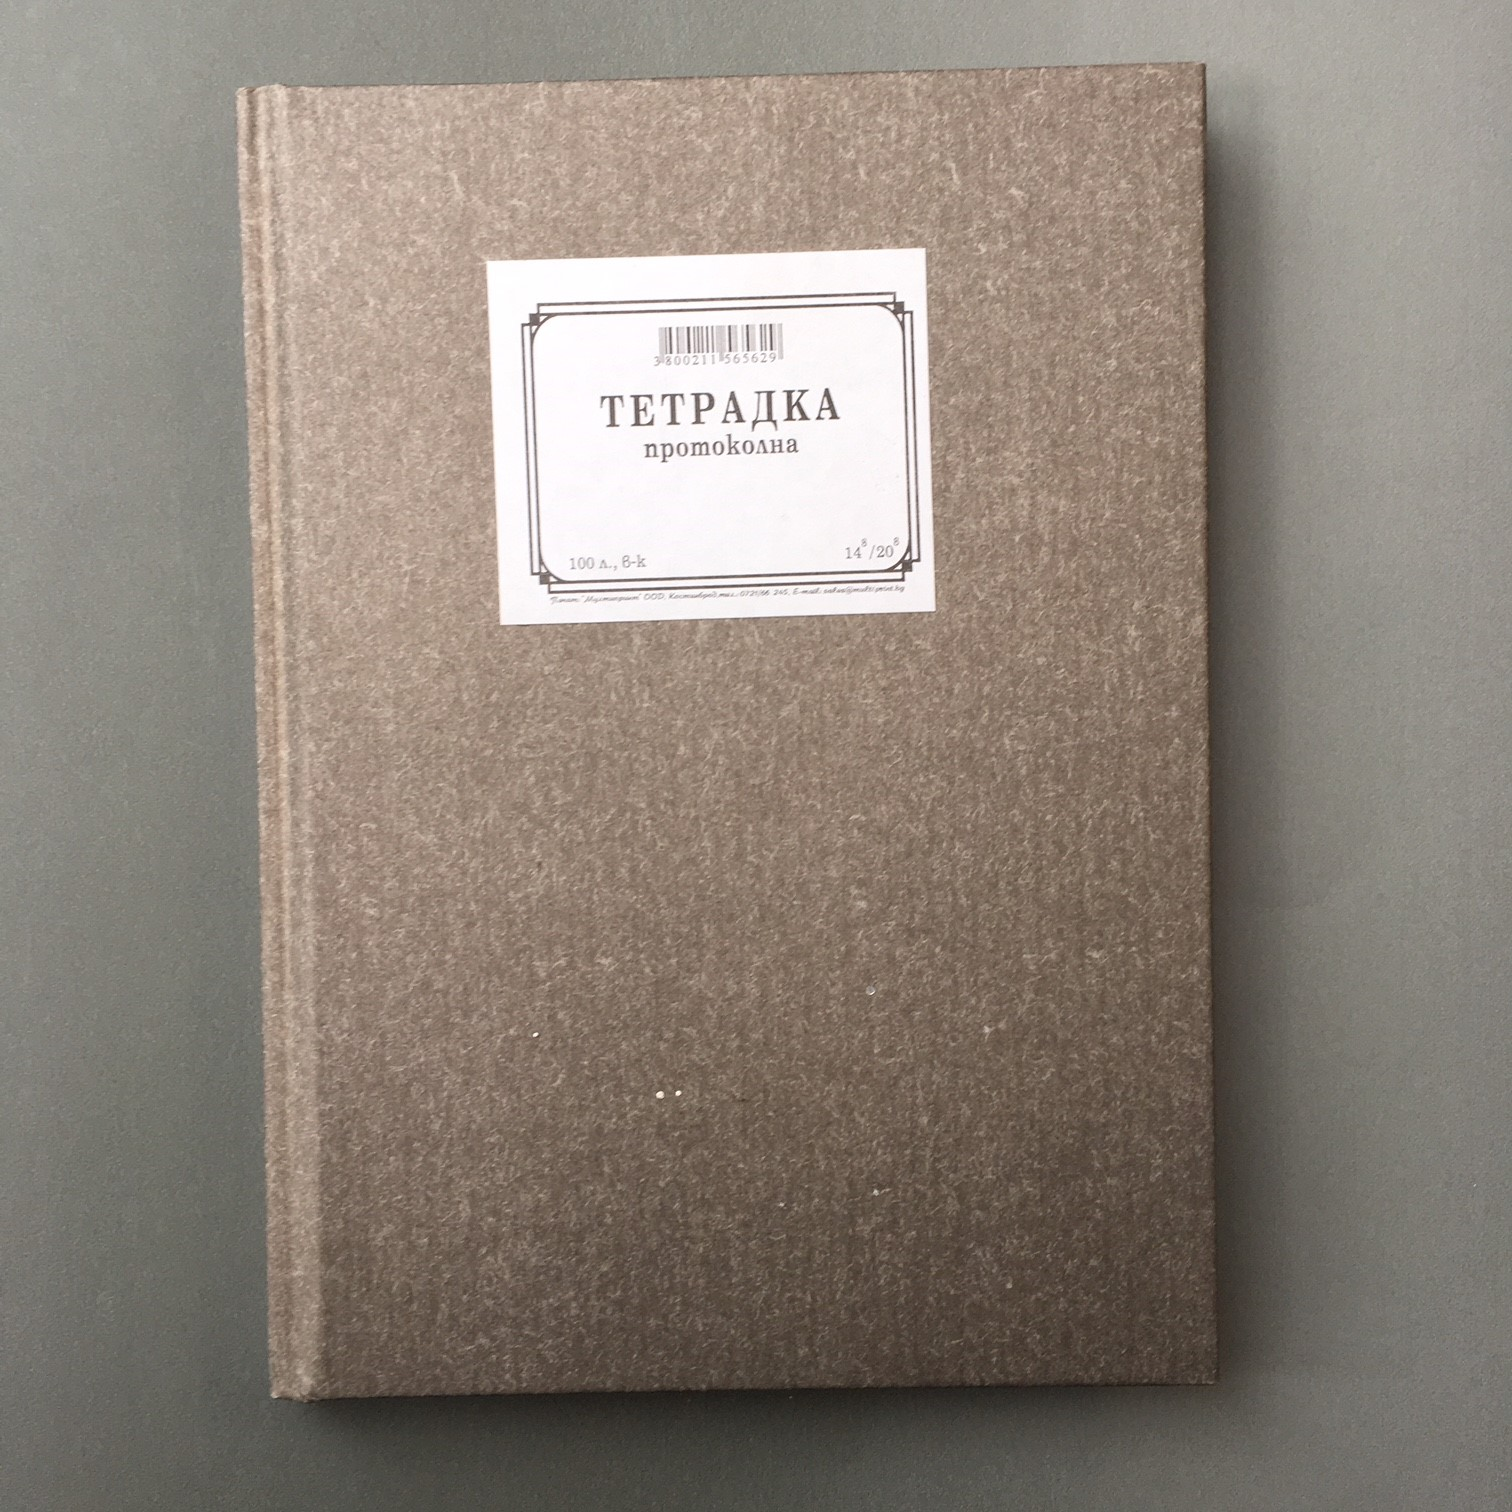 vintage looking notebook with crooked label with Cyrillic letters